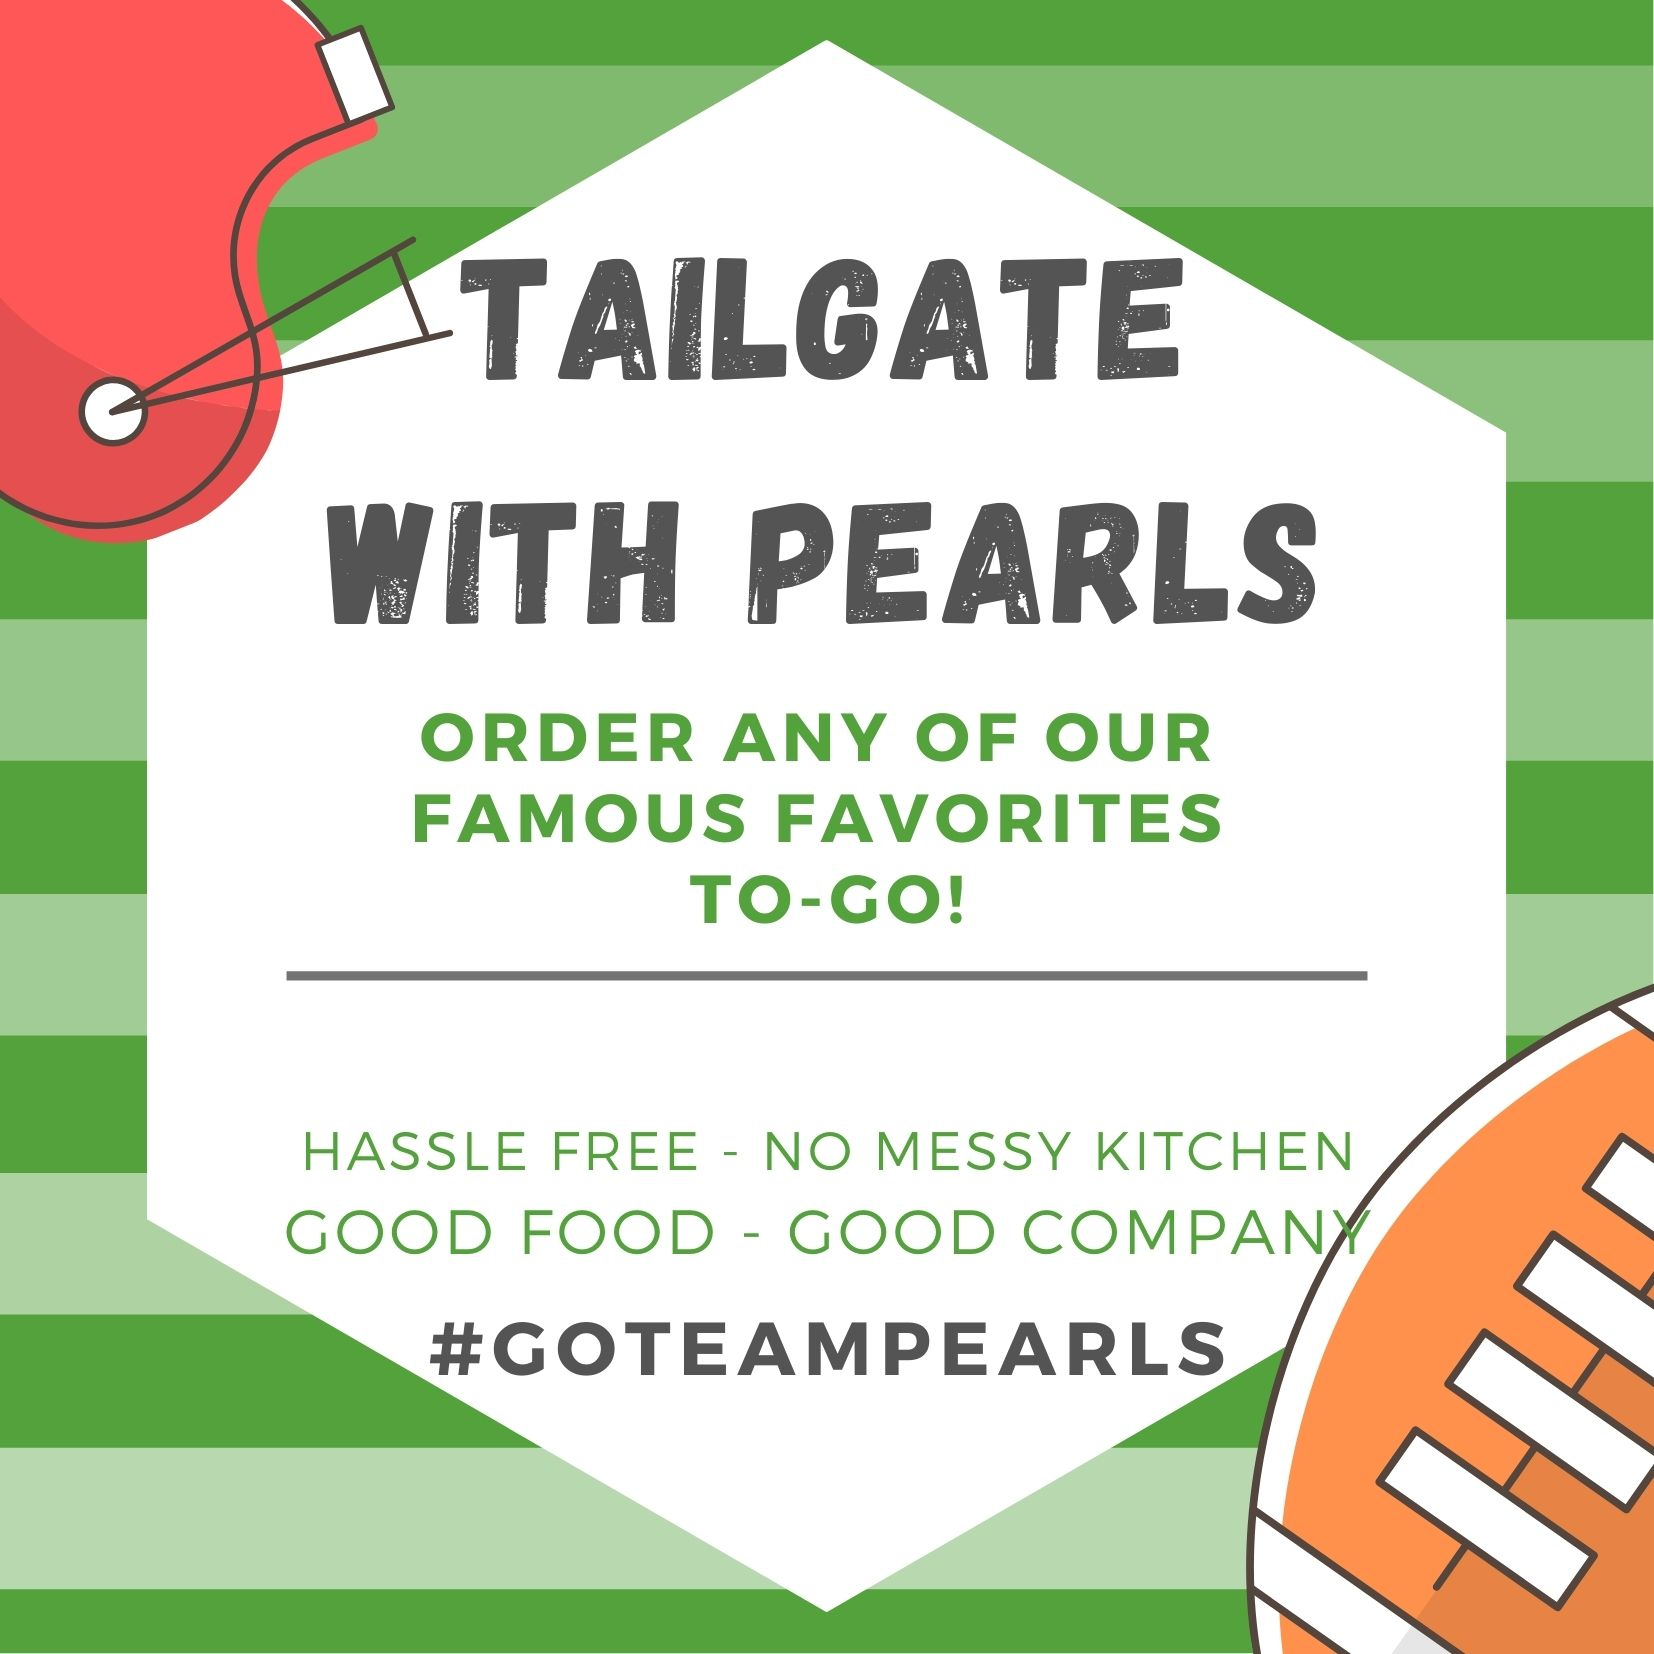 Tailgate Party with PEARLS!